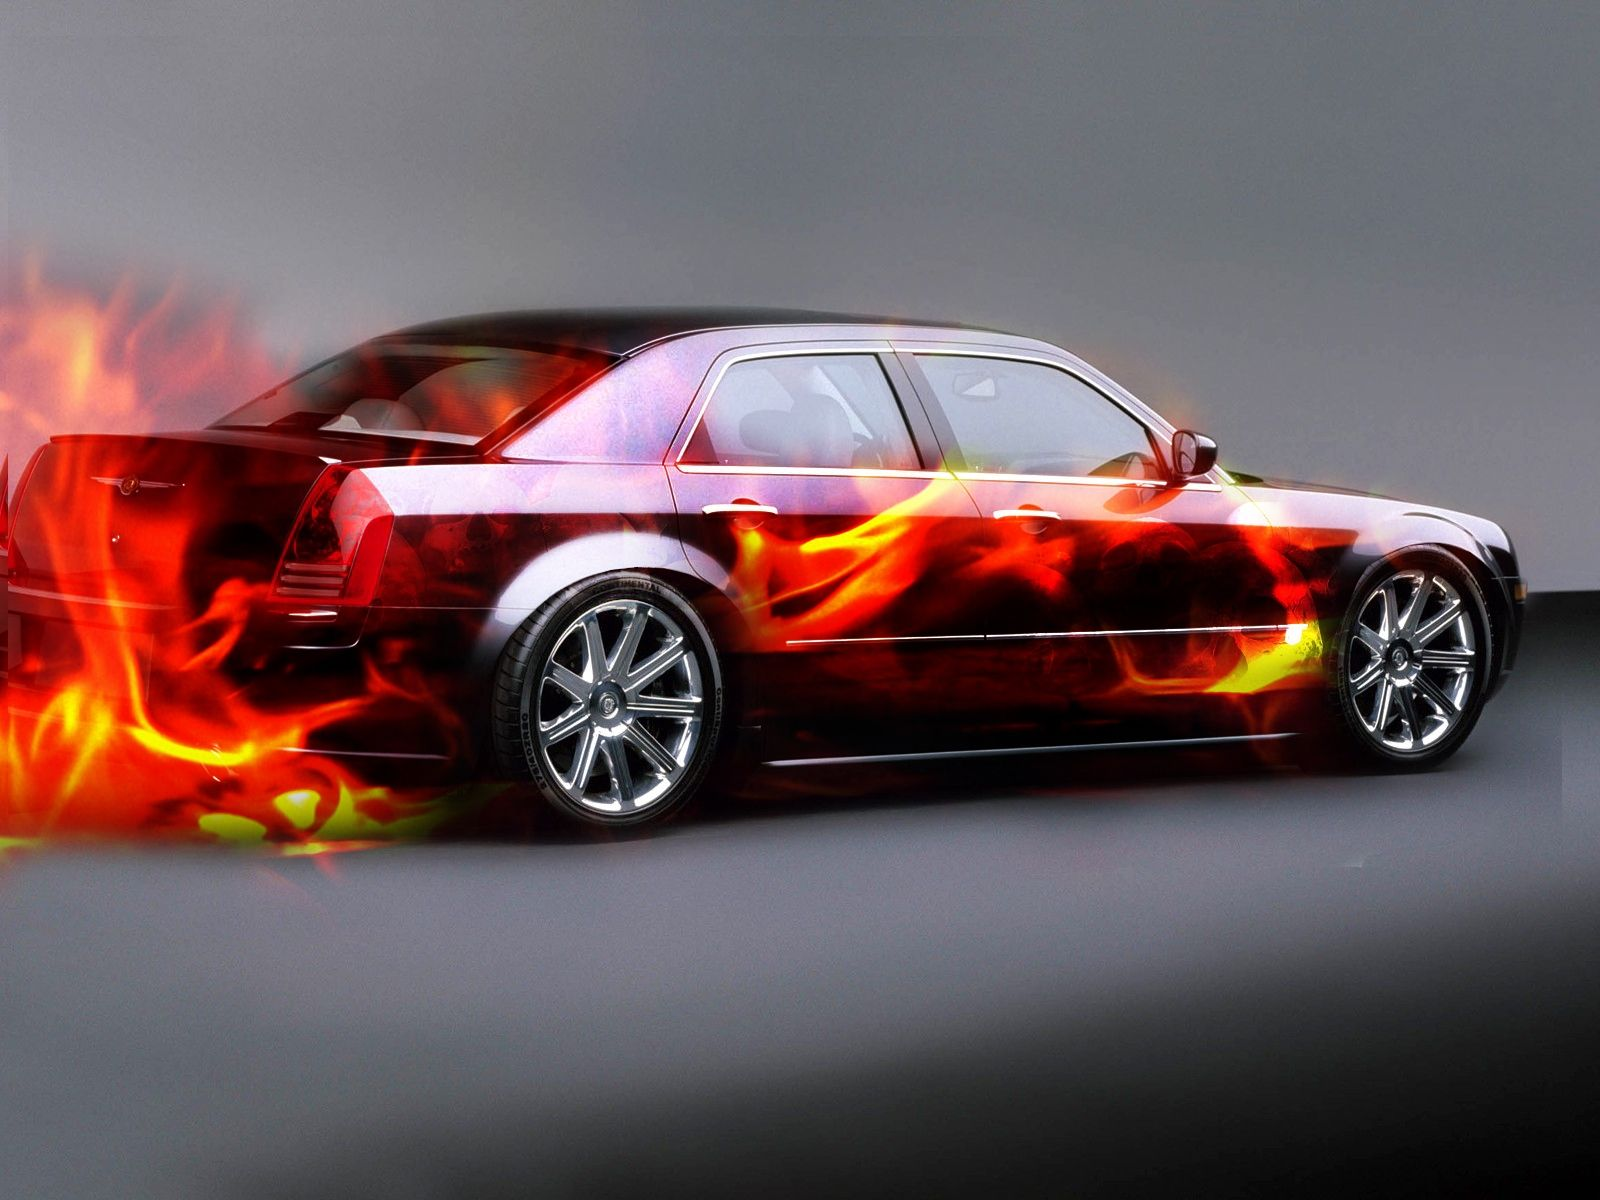 Hot Car Pics Car Wallpapers Custom Cars Turbo Car